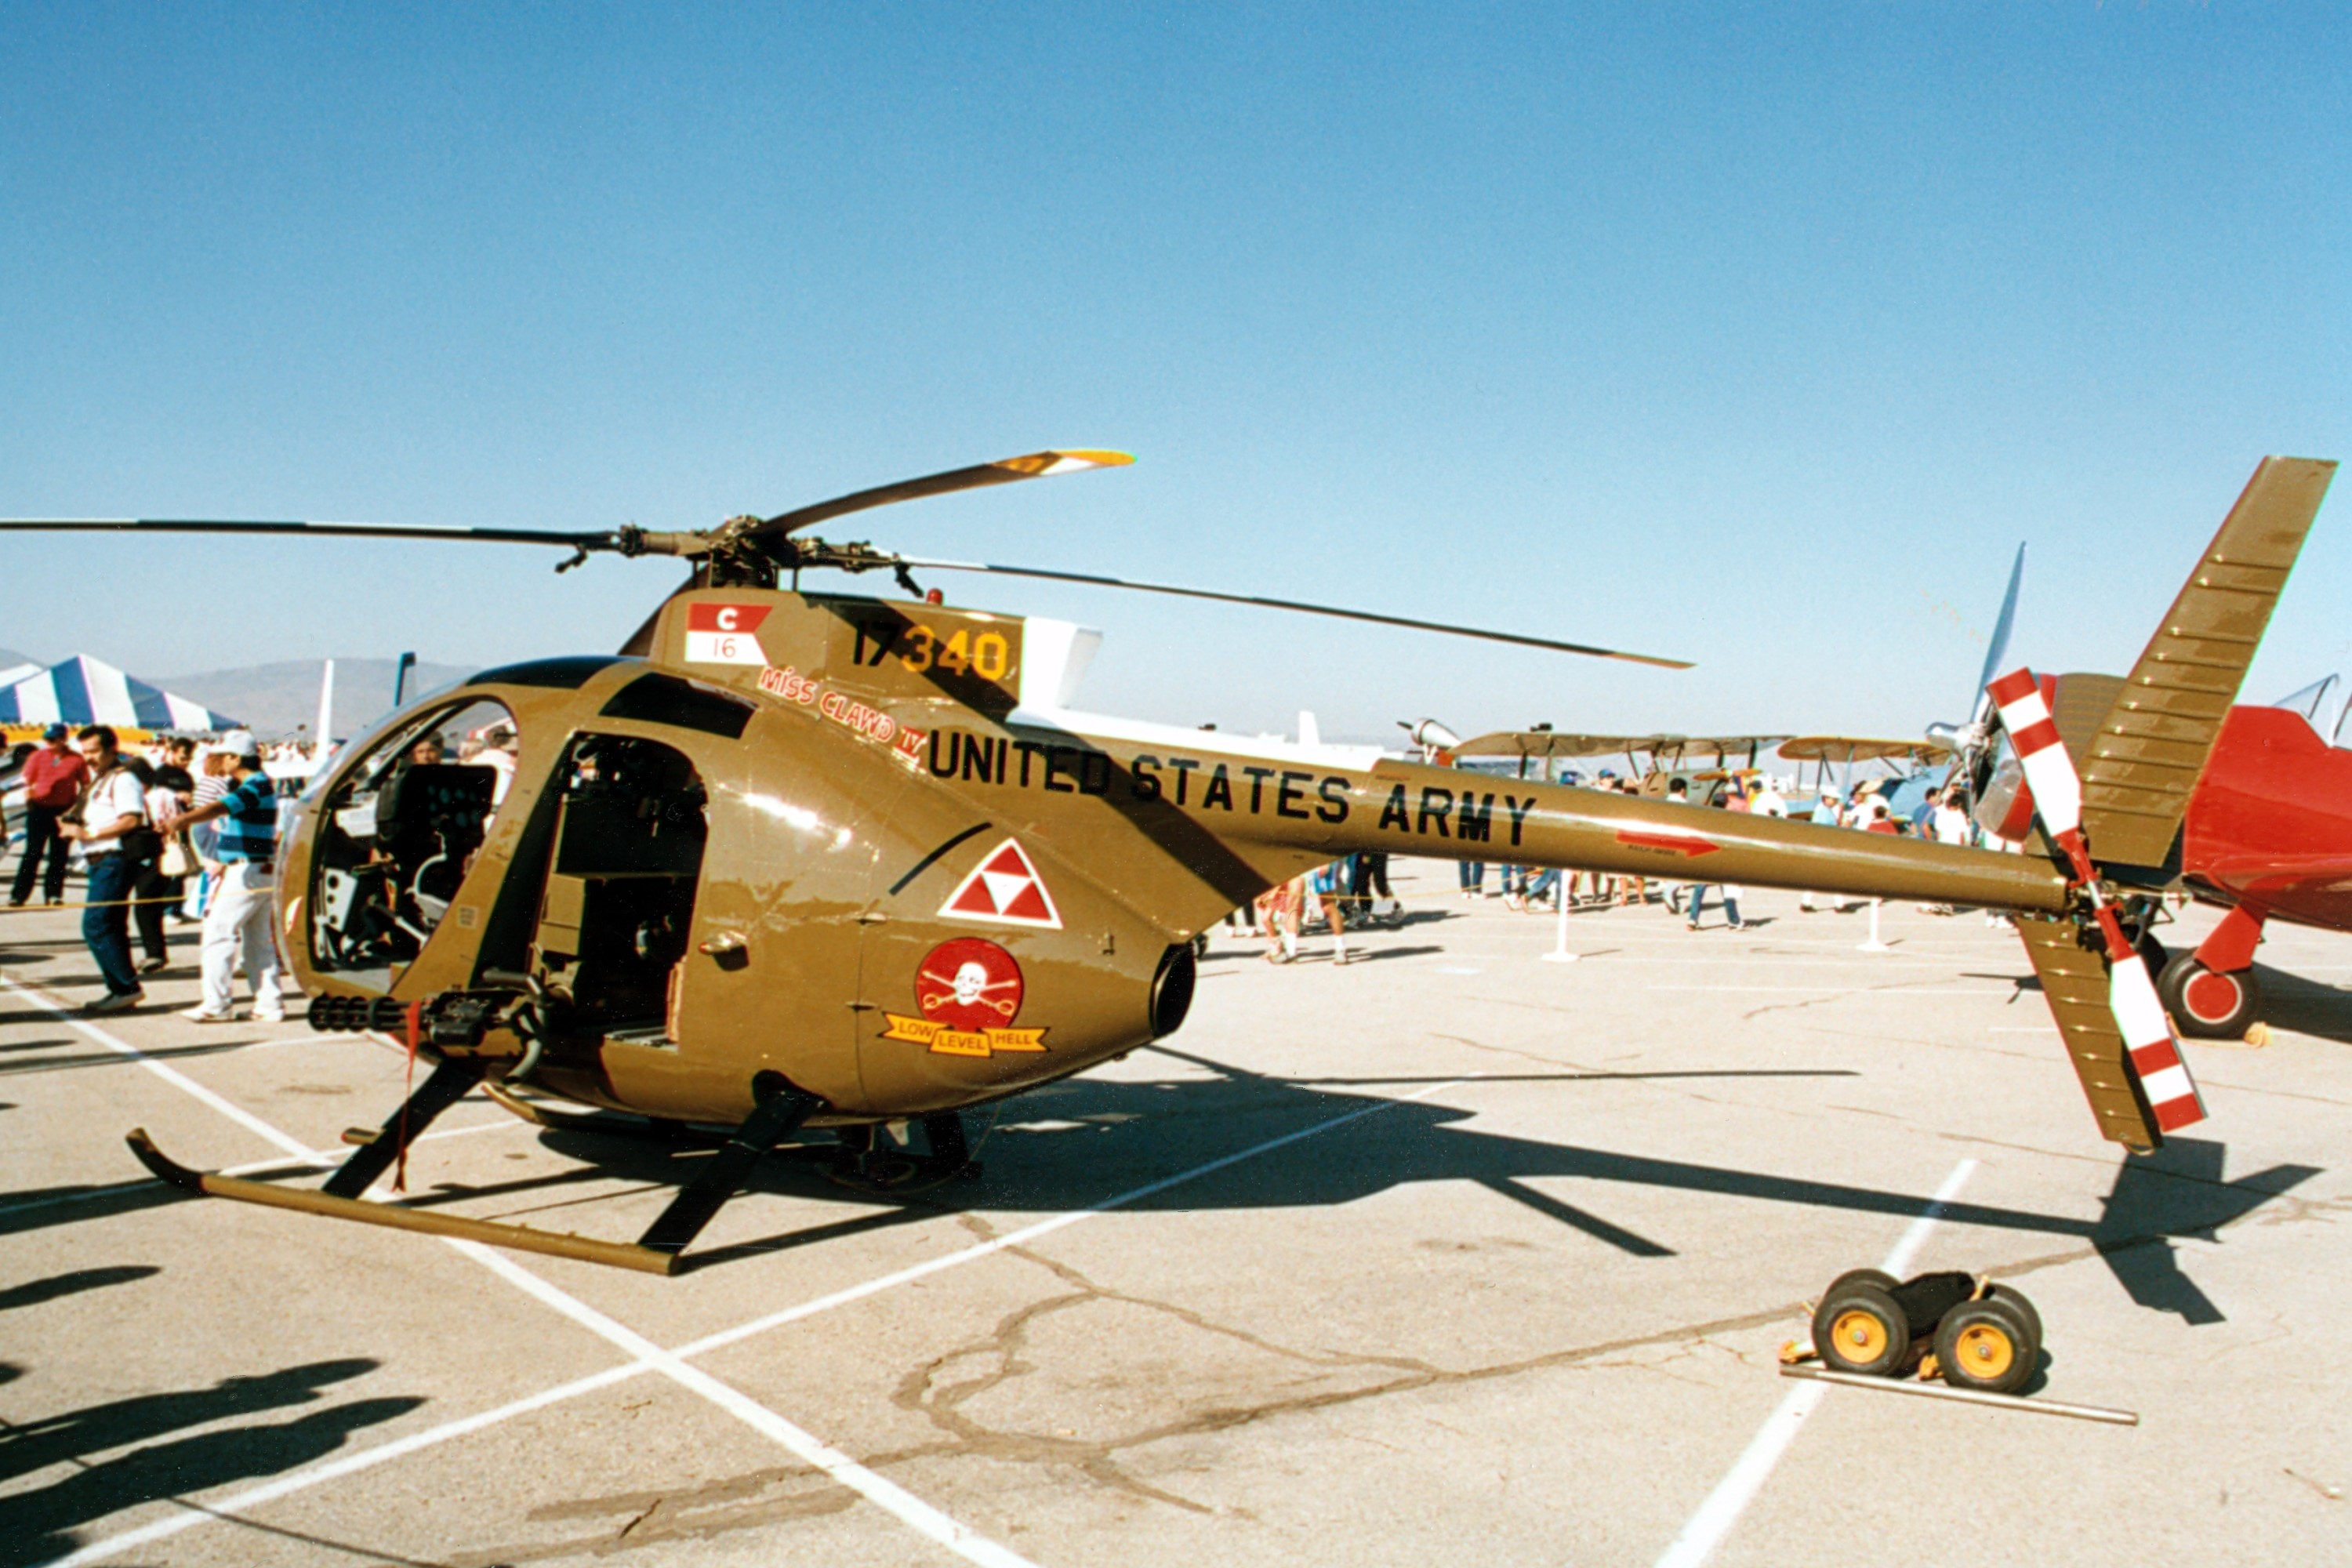 cost of helicopter with Hughes 369m on Petropavlovsk Kamchatsky Birds Eye View as well Western Pacific Airlines furthermore The Robinson R22 besides Ch53k The Us Marines Hlr Helicopter Program Updated 01724 moreover Citation Hemisphere.